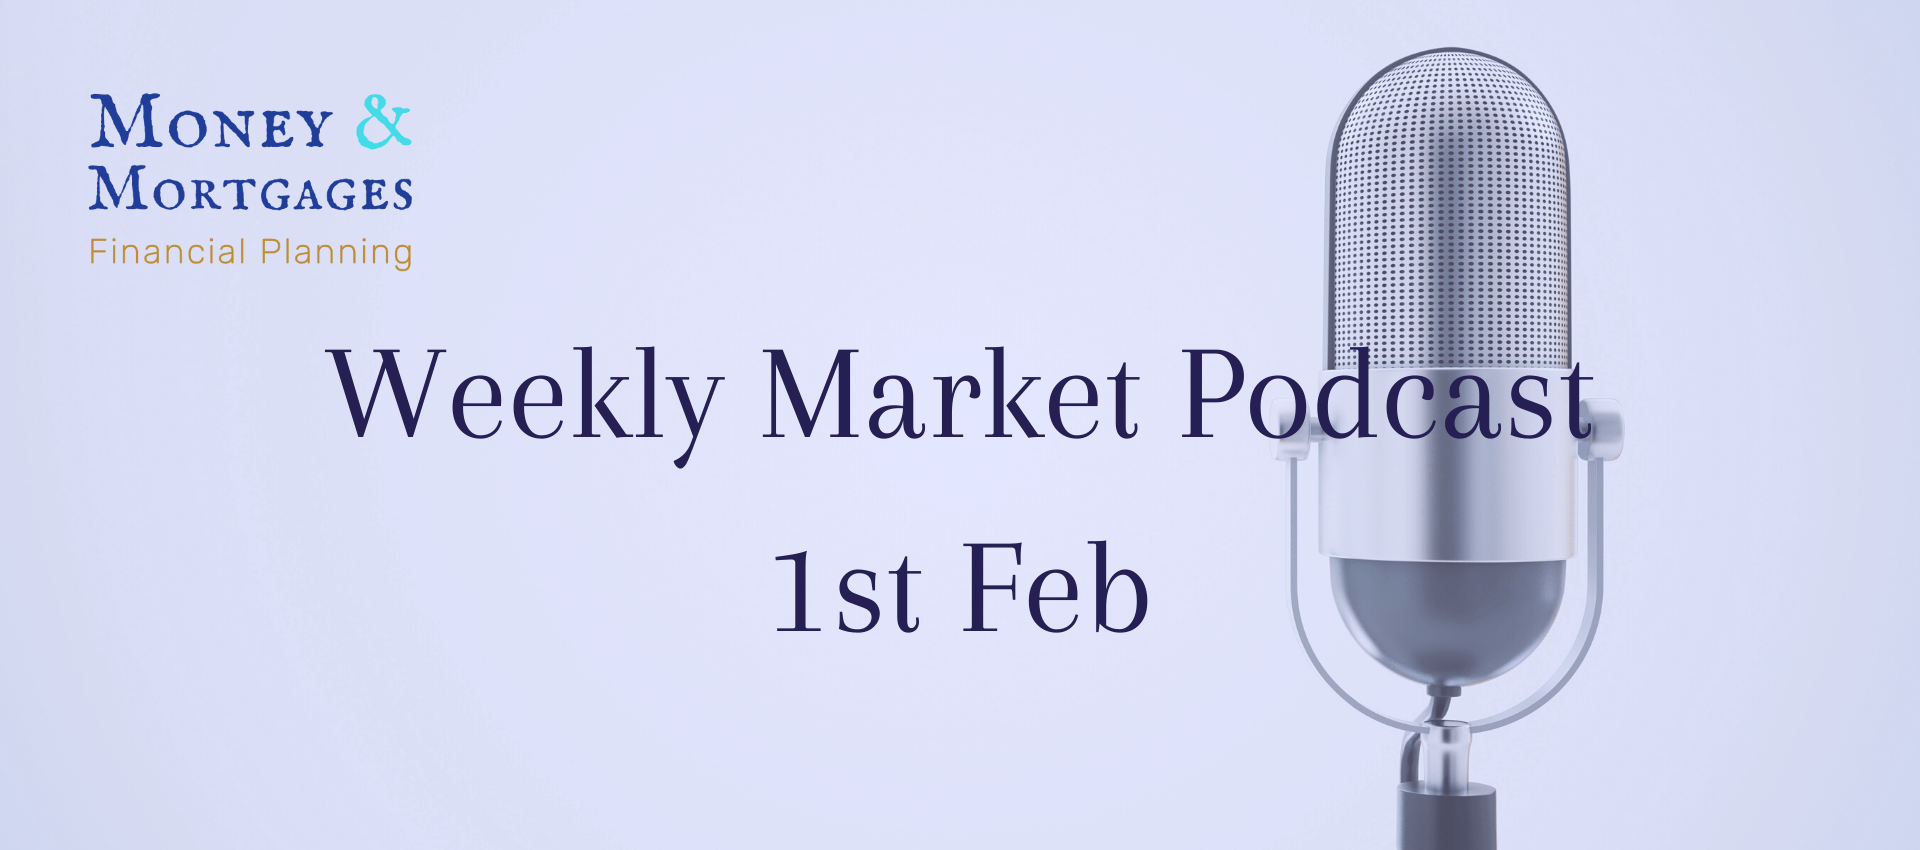 1st Feb weekly market podcast